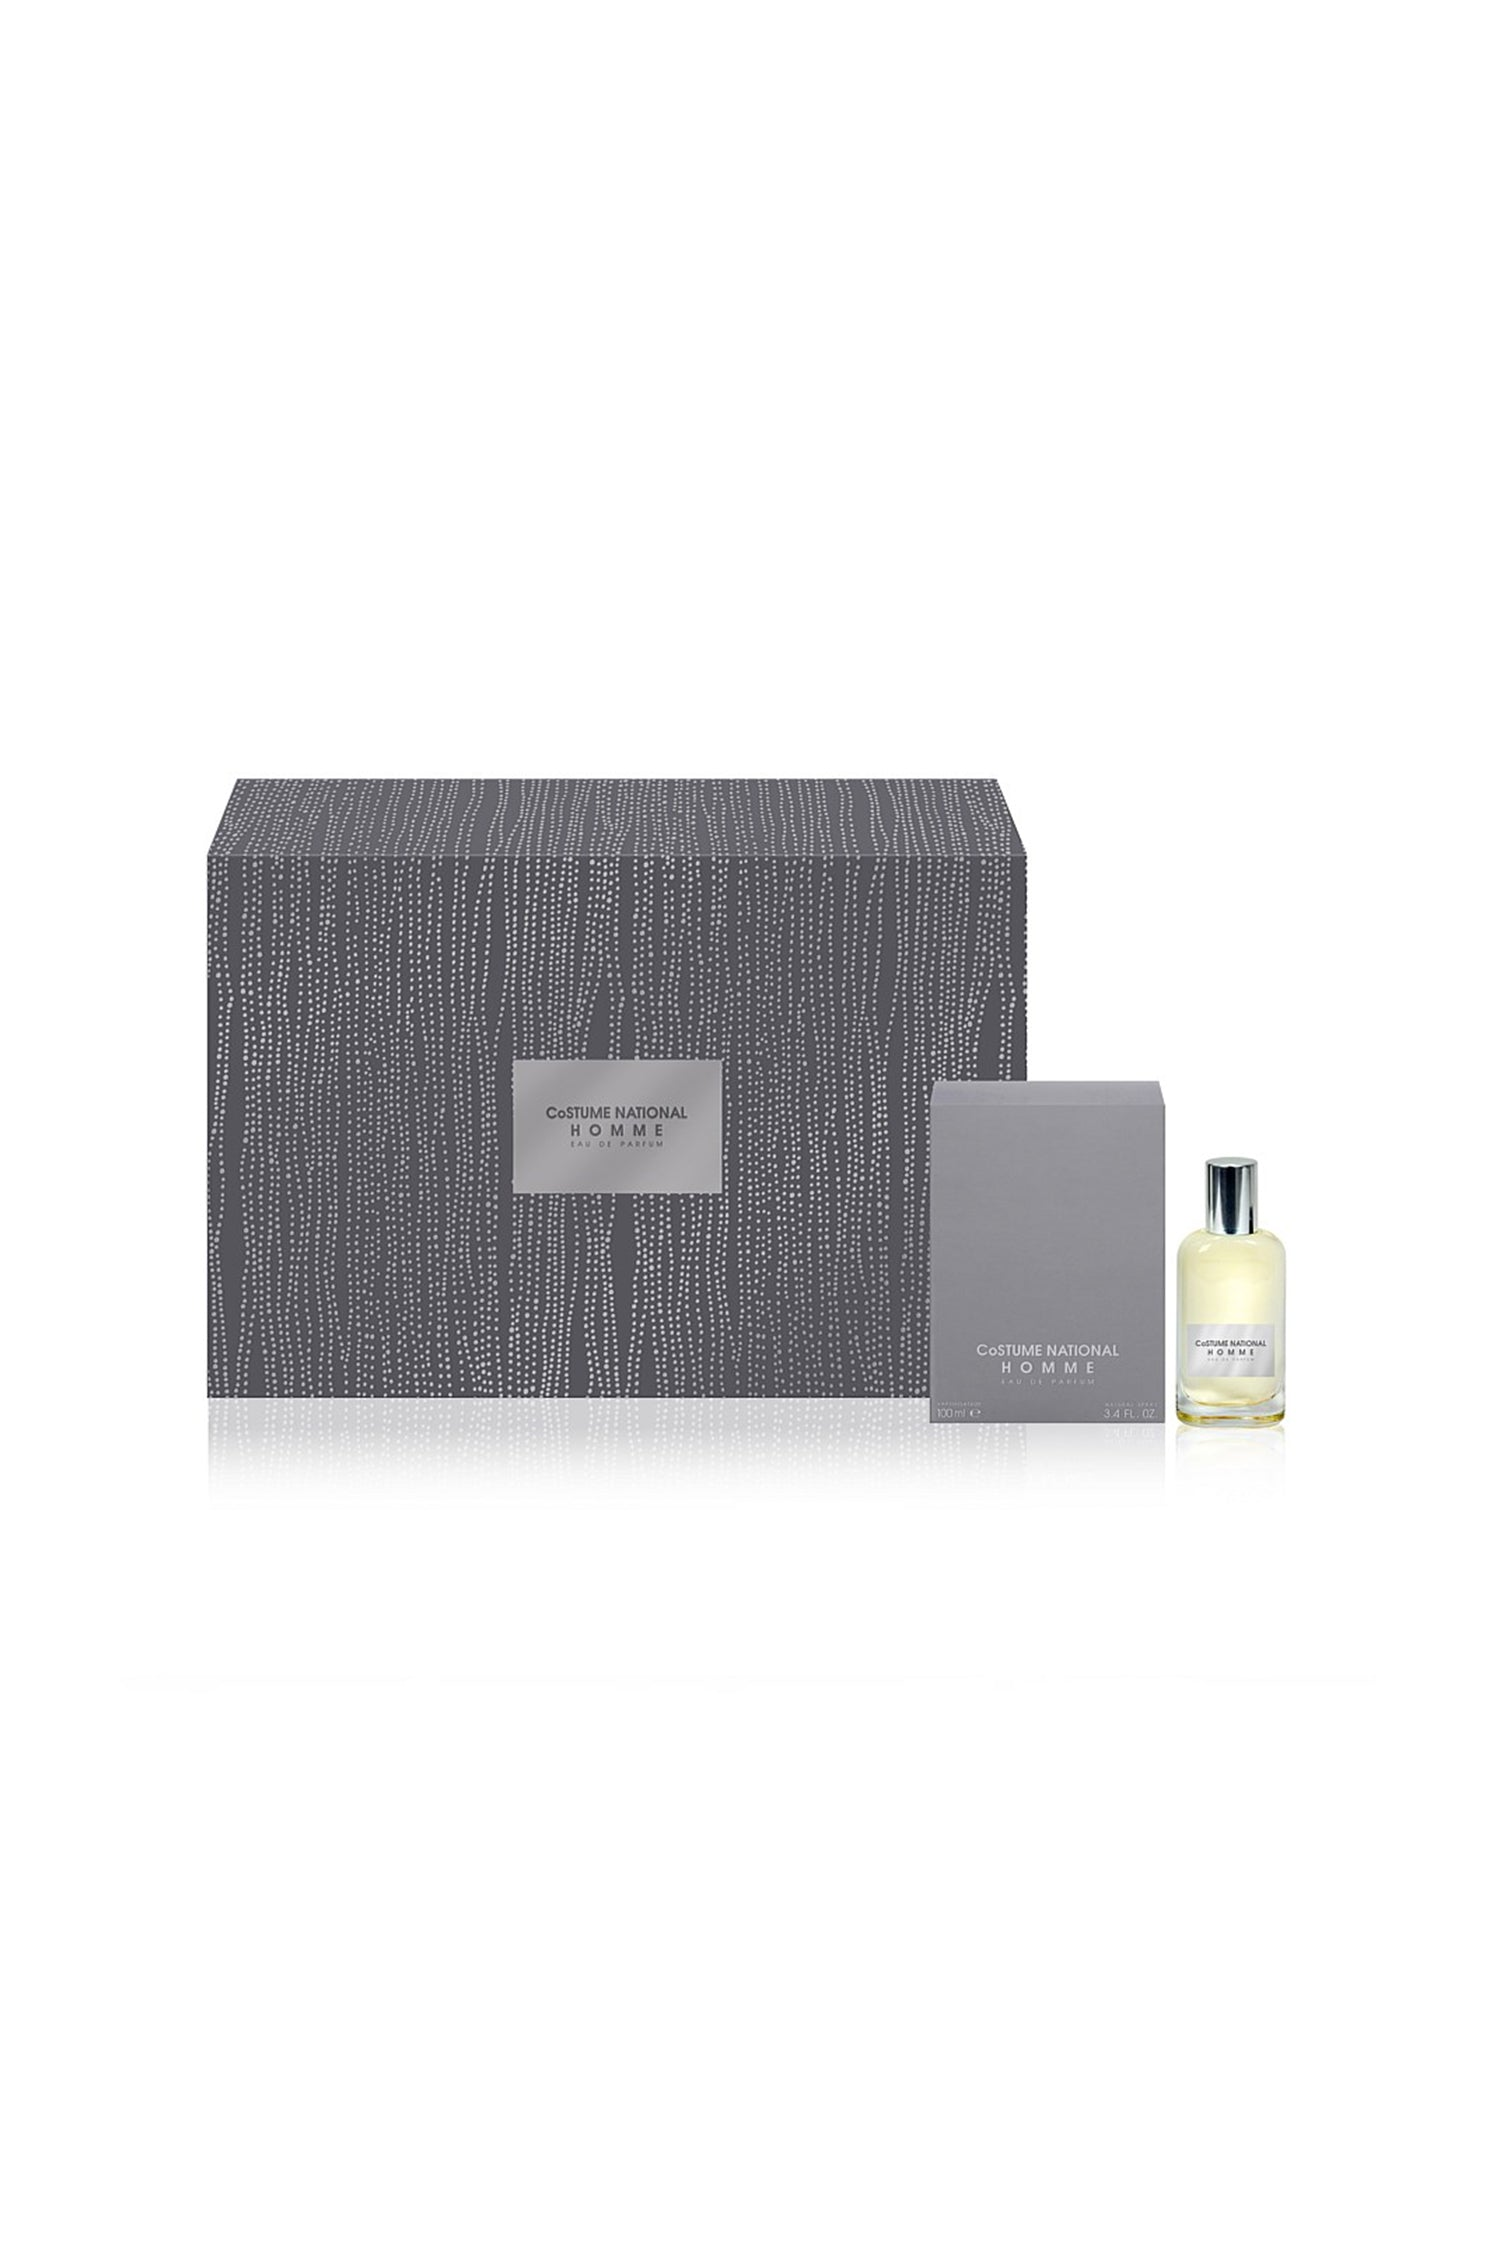 COSTUME NATIONAL HOMME GIFT SET